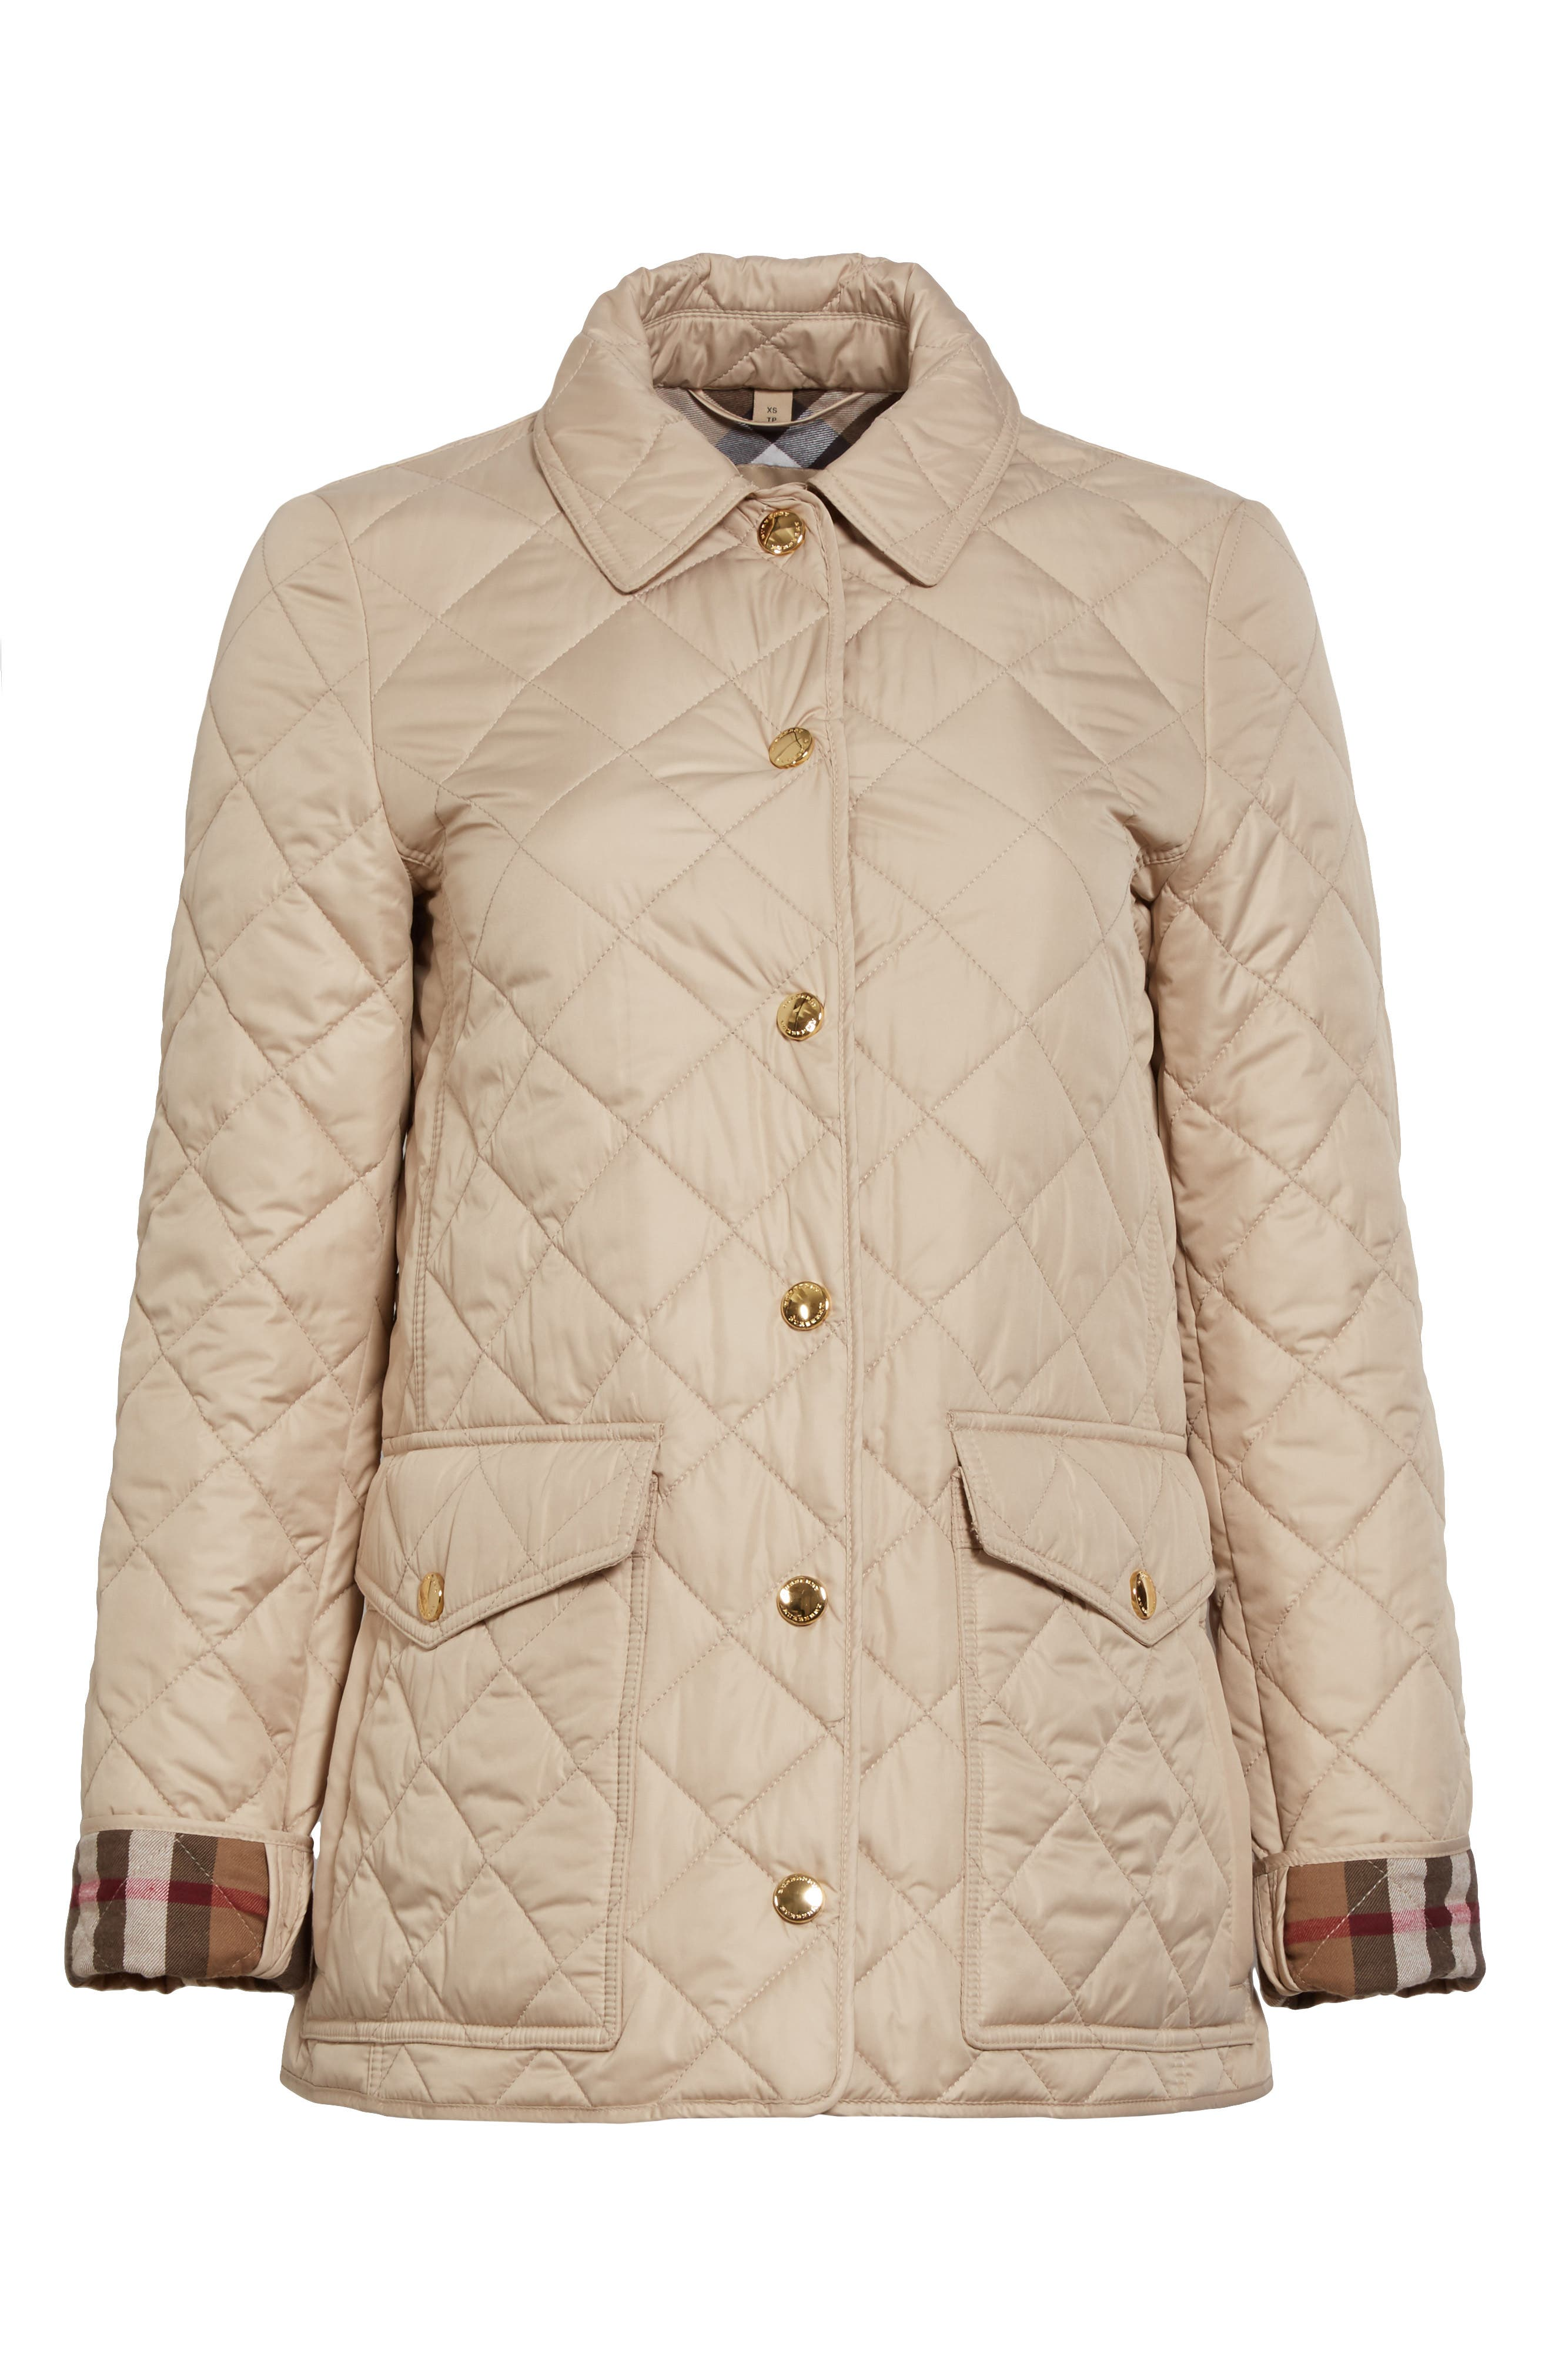 Westbridge Quilted Jacket,                             Alternate thumbnail 6, color,                             250